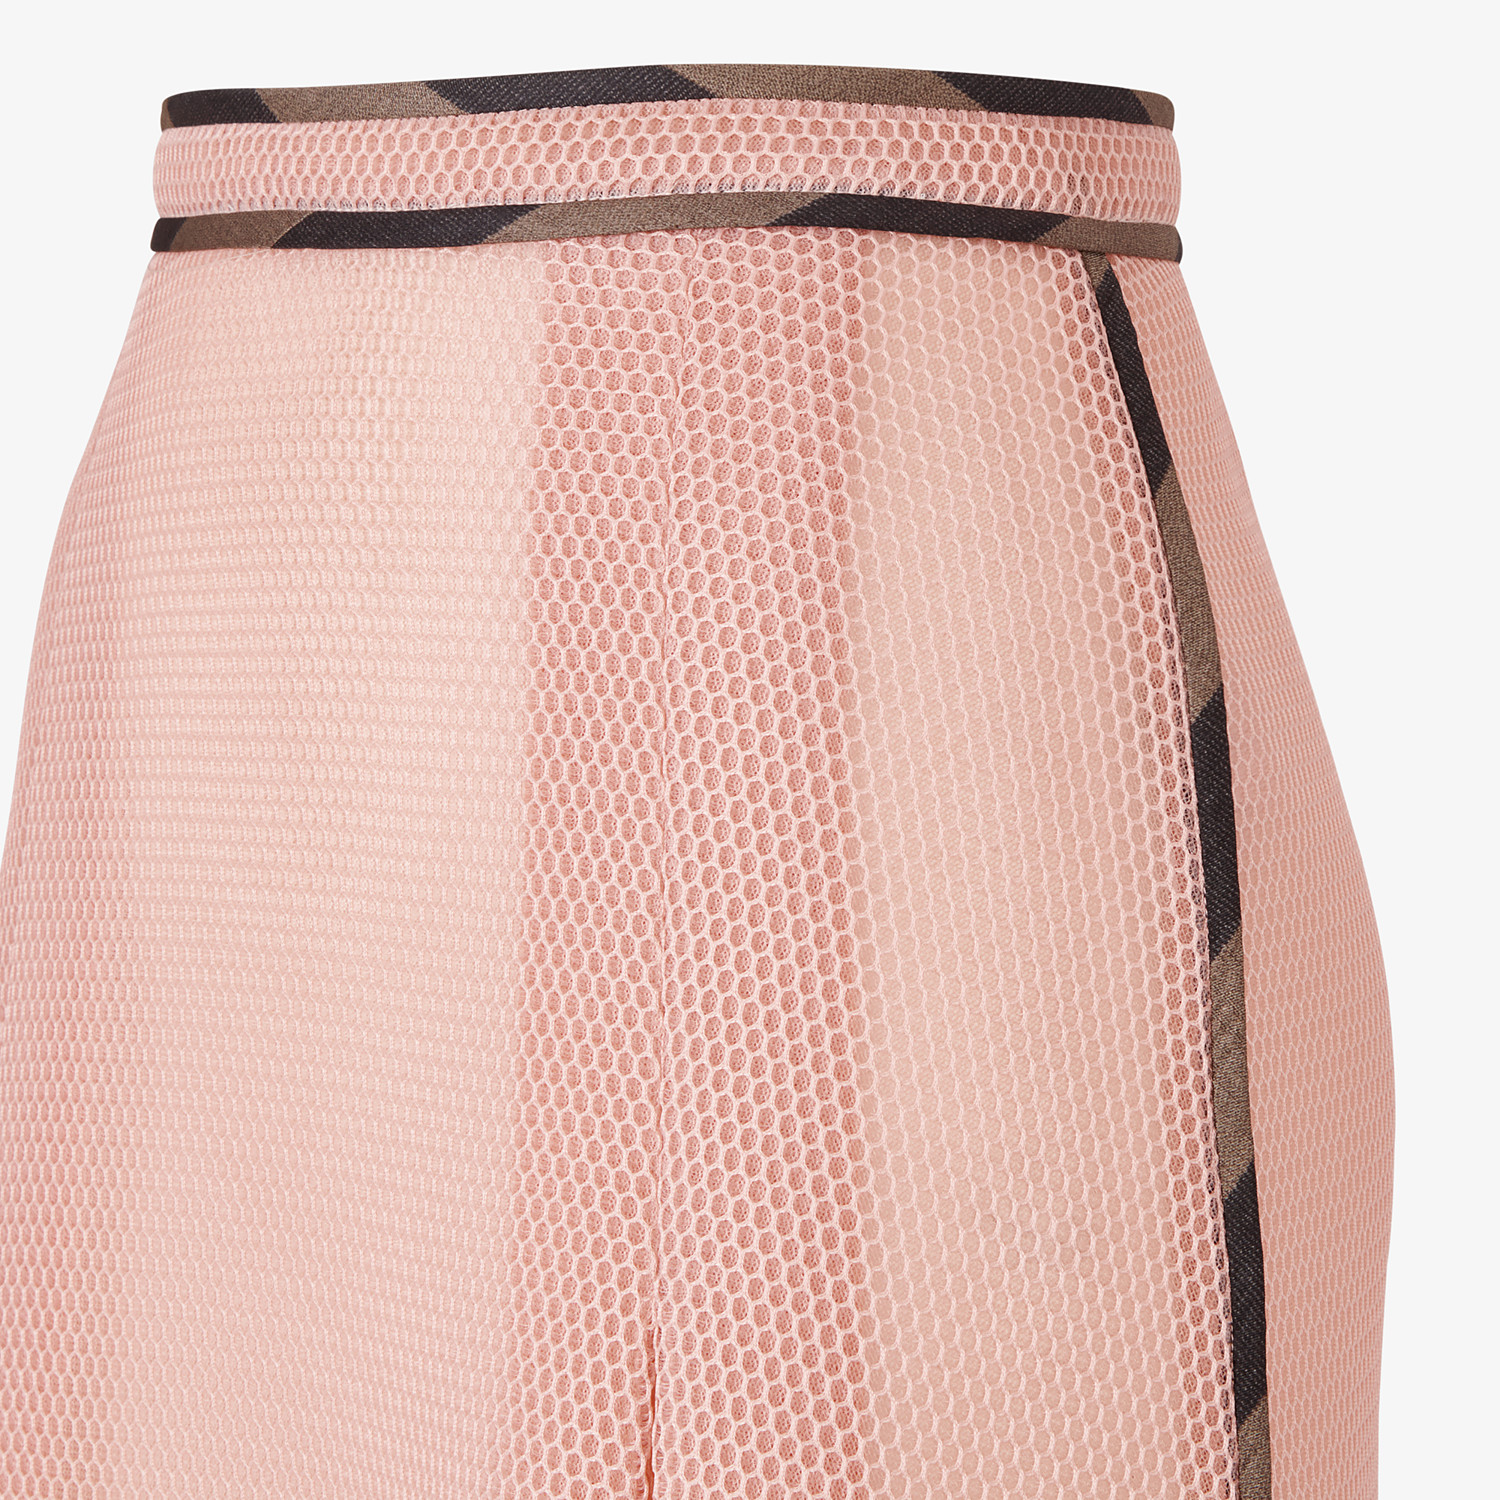 FENDI SKIRT - Skirt in pink tech mesh - view 3 detail